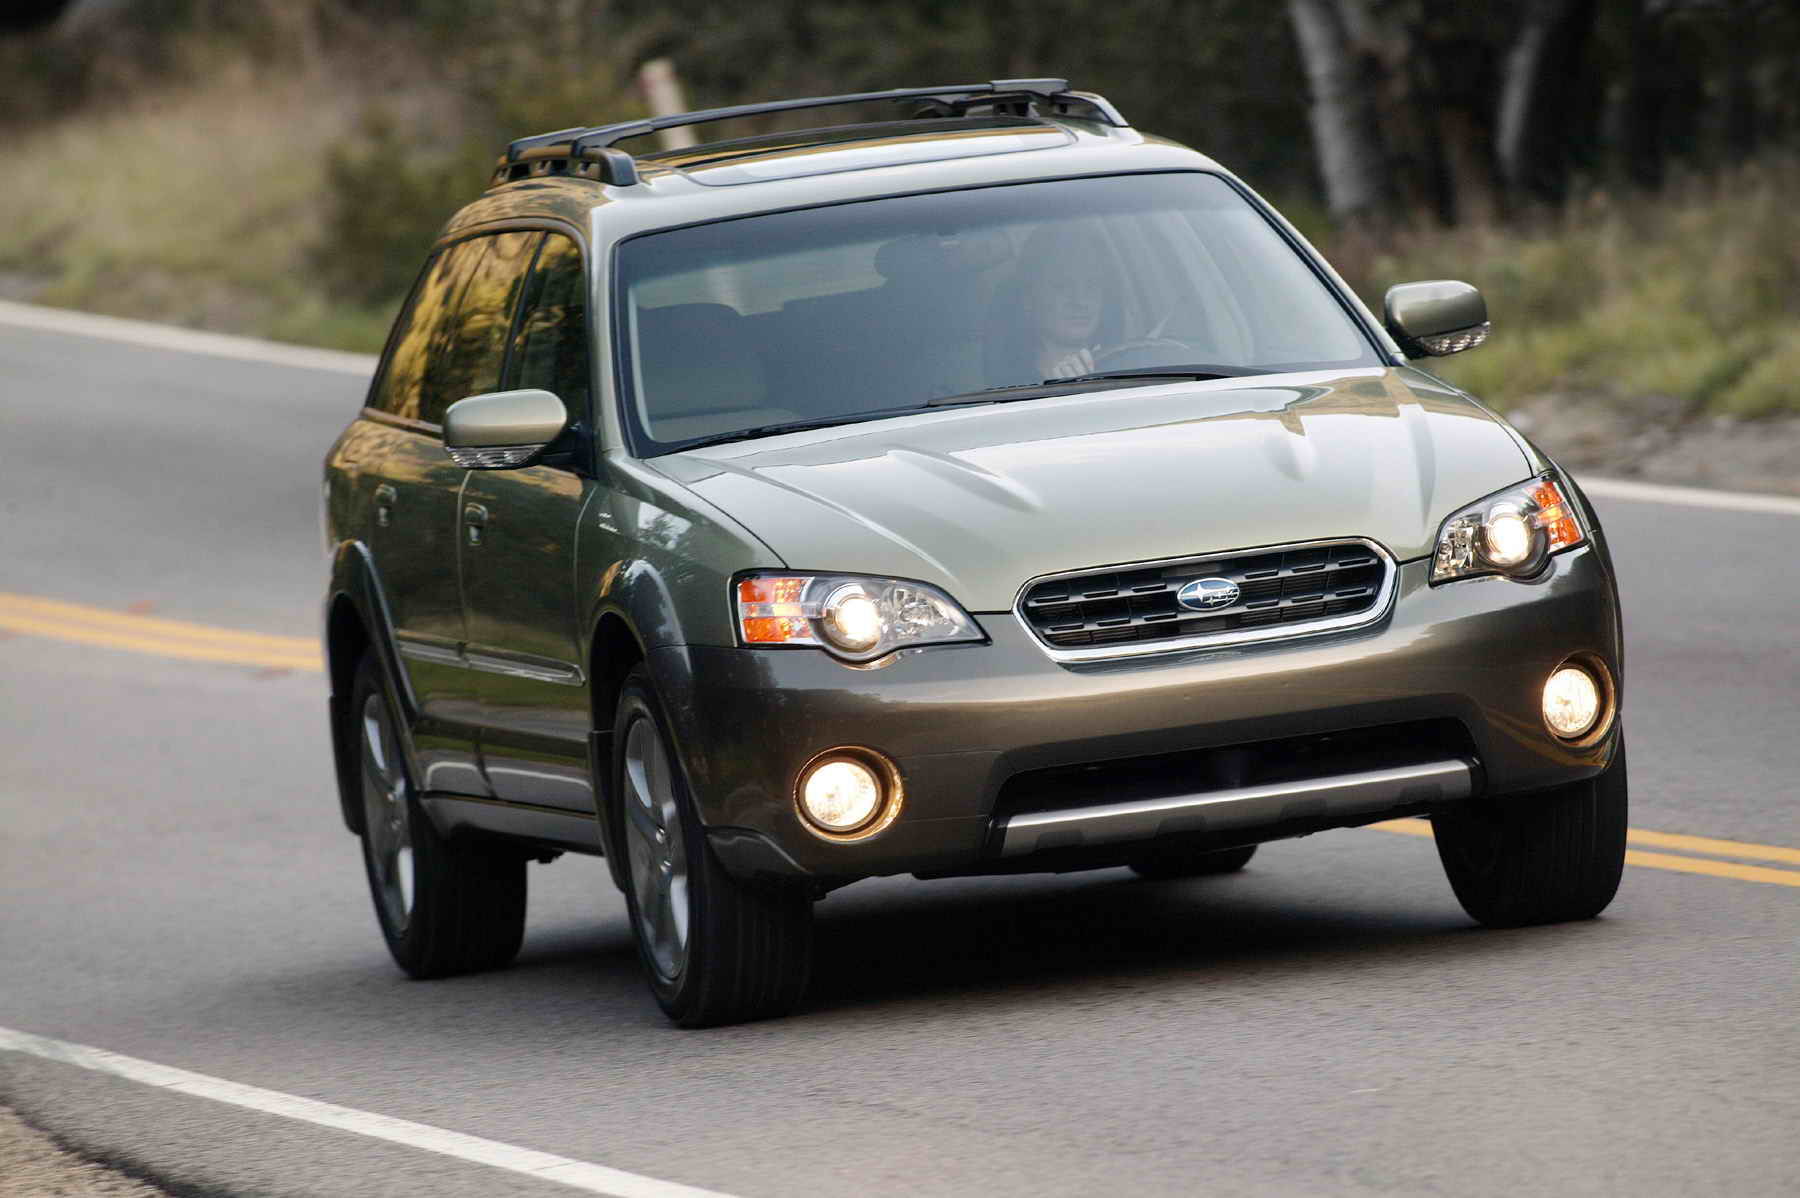 2006 subaru outback review gallery top speed. Black Bedroom Furniture Sets. Home Design Ideas